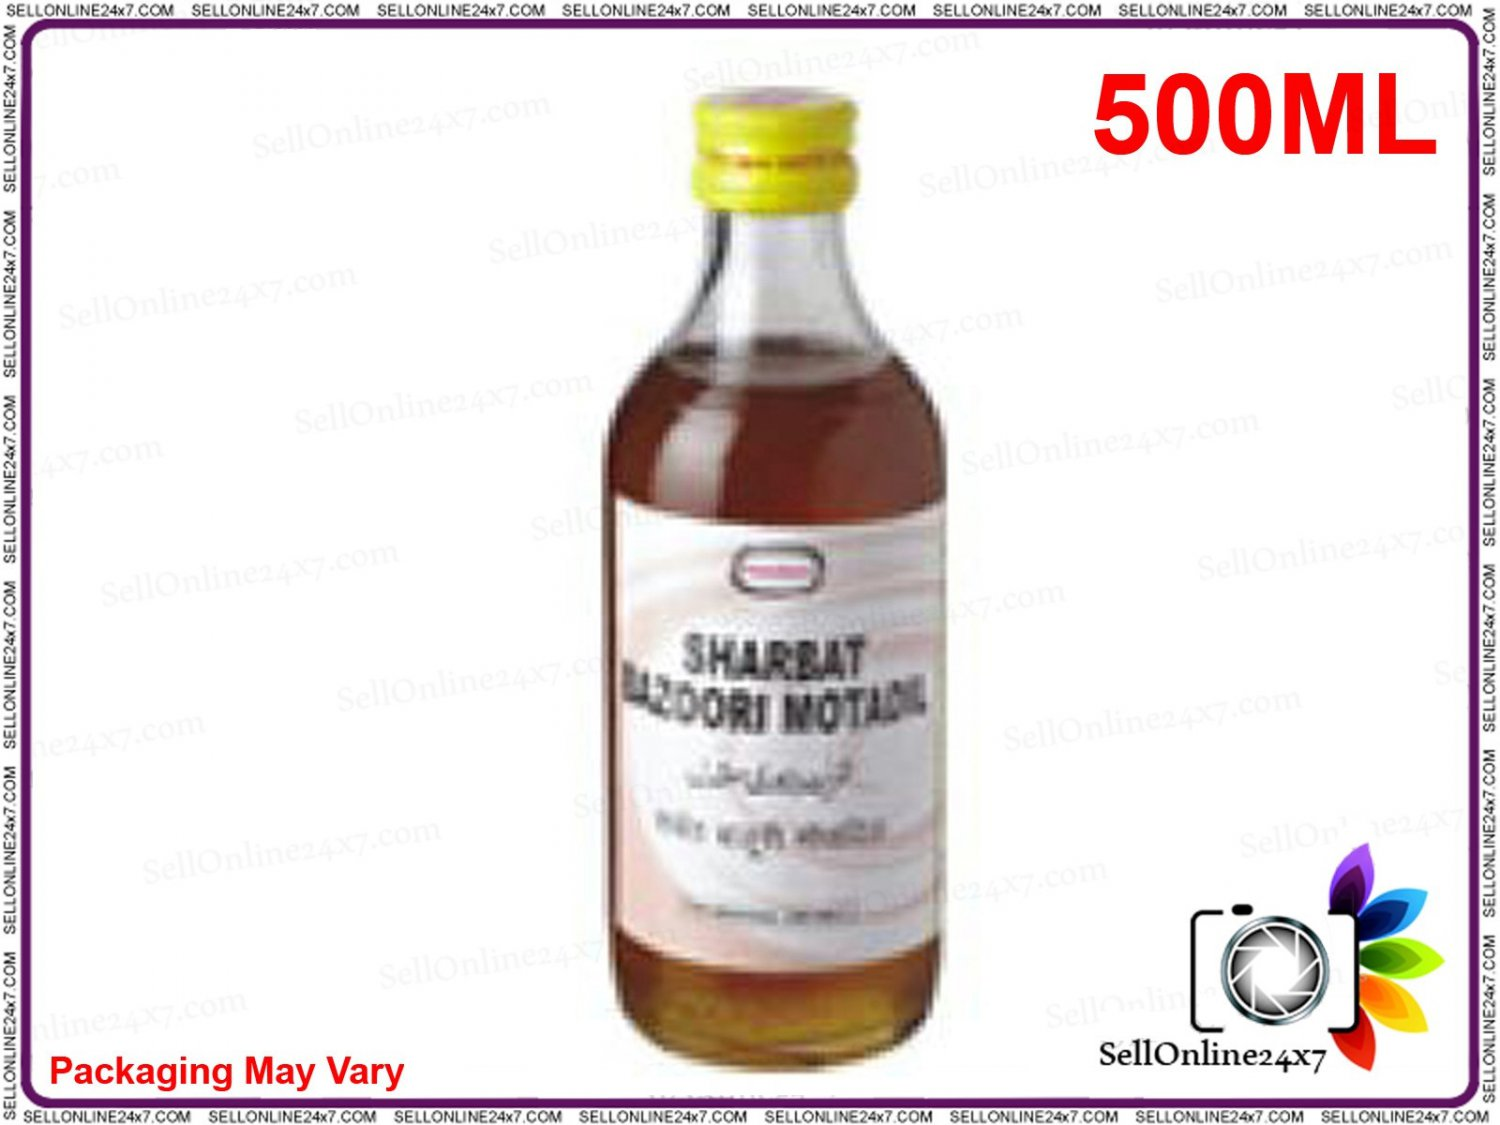 Hamdard Sharbat Bazoori Motadil For Women Health-500Ml